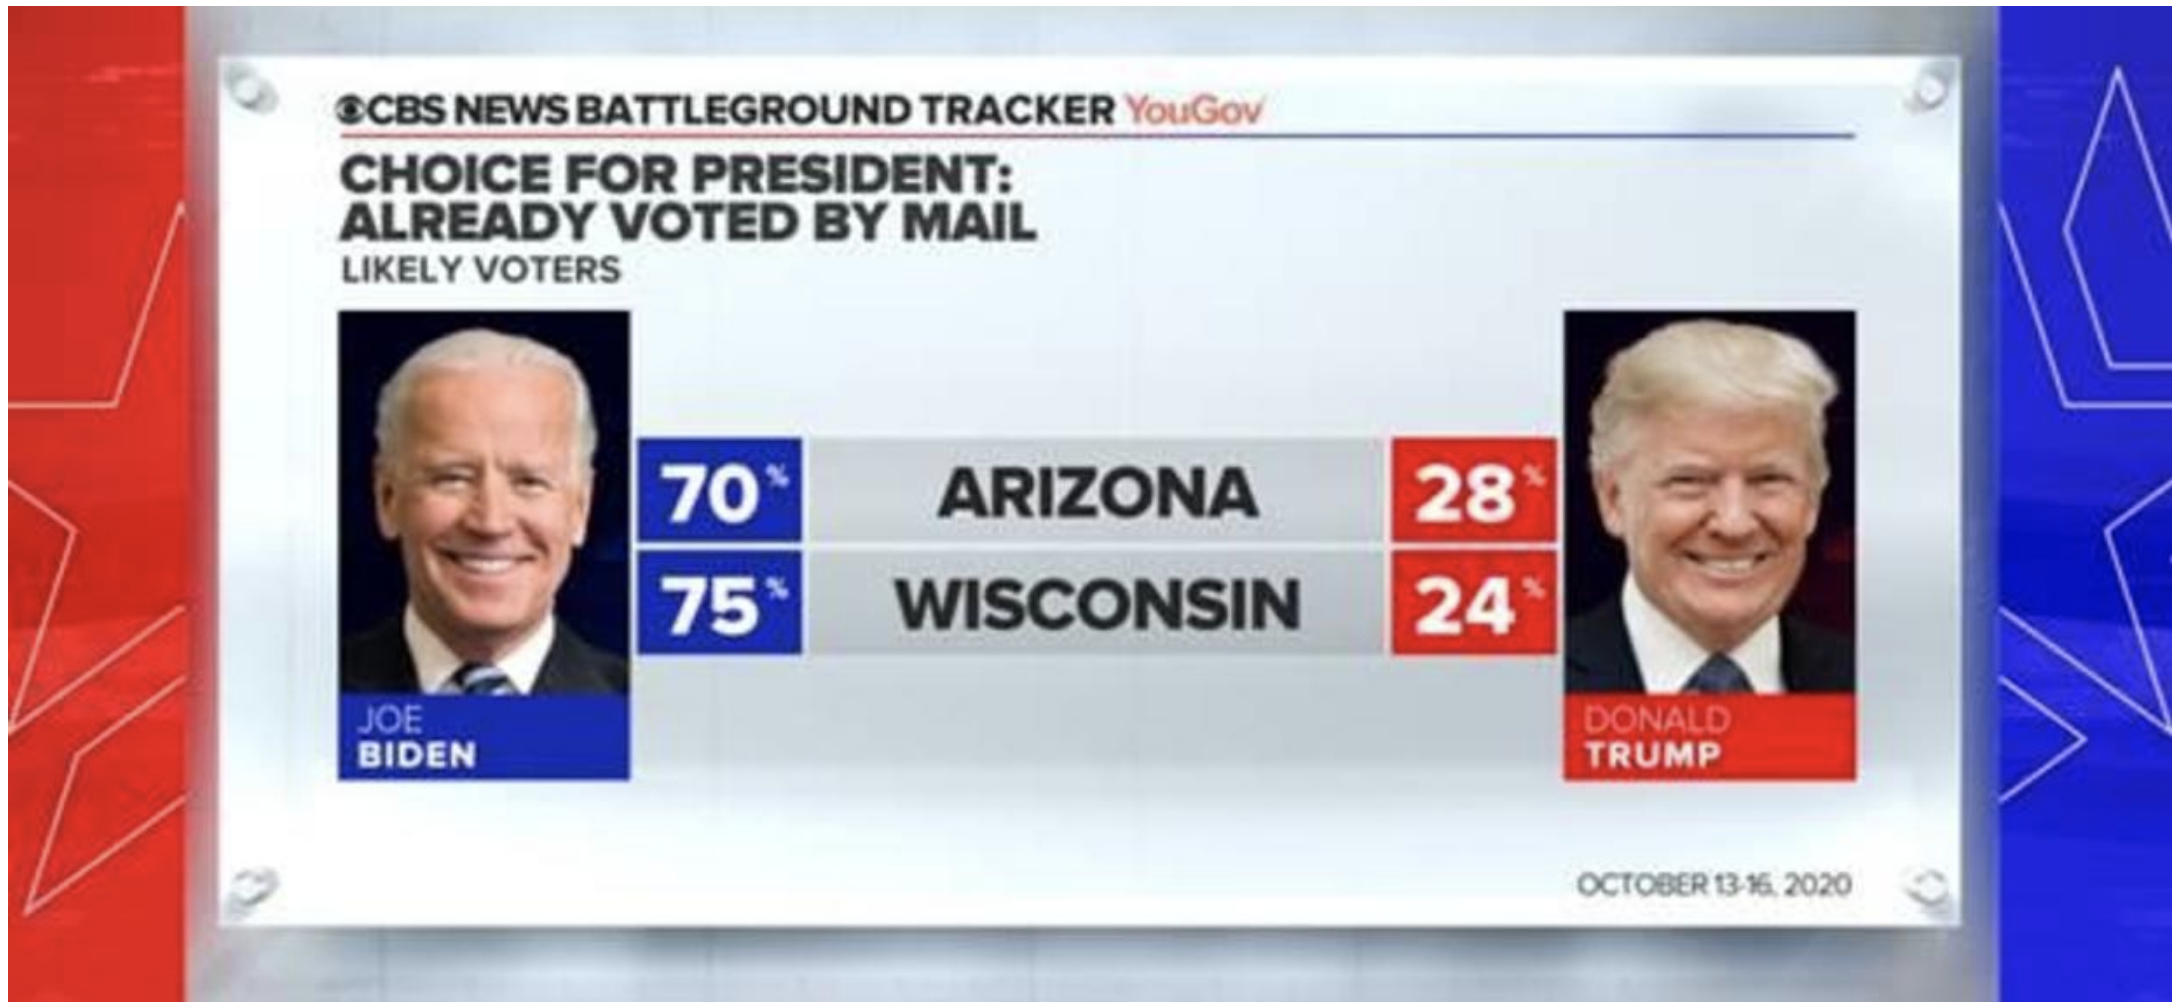 Screen-Shot-2020-10-18-at-11.51.14-AM Updated 'Swing State' Poll Results Show Dramatic Double-Digit Gap Election 2020 Featured Politics Polls Top Stories